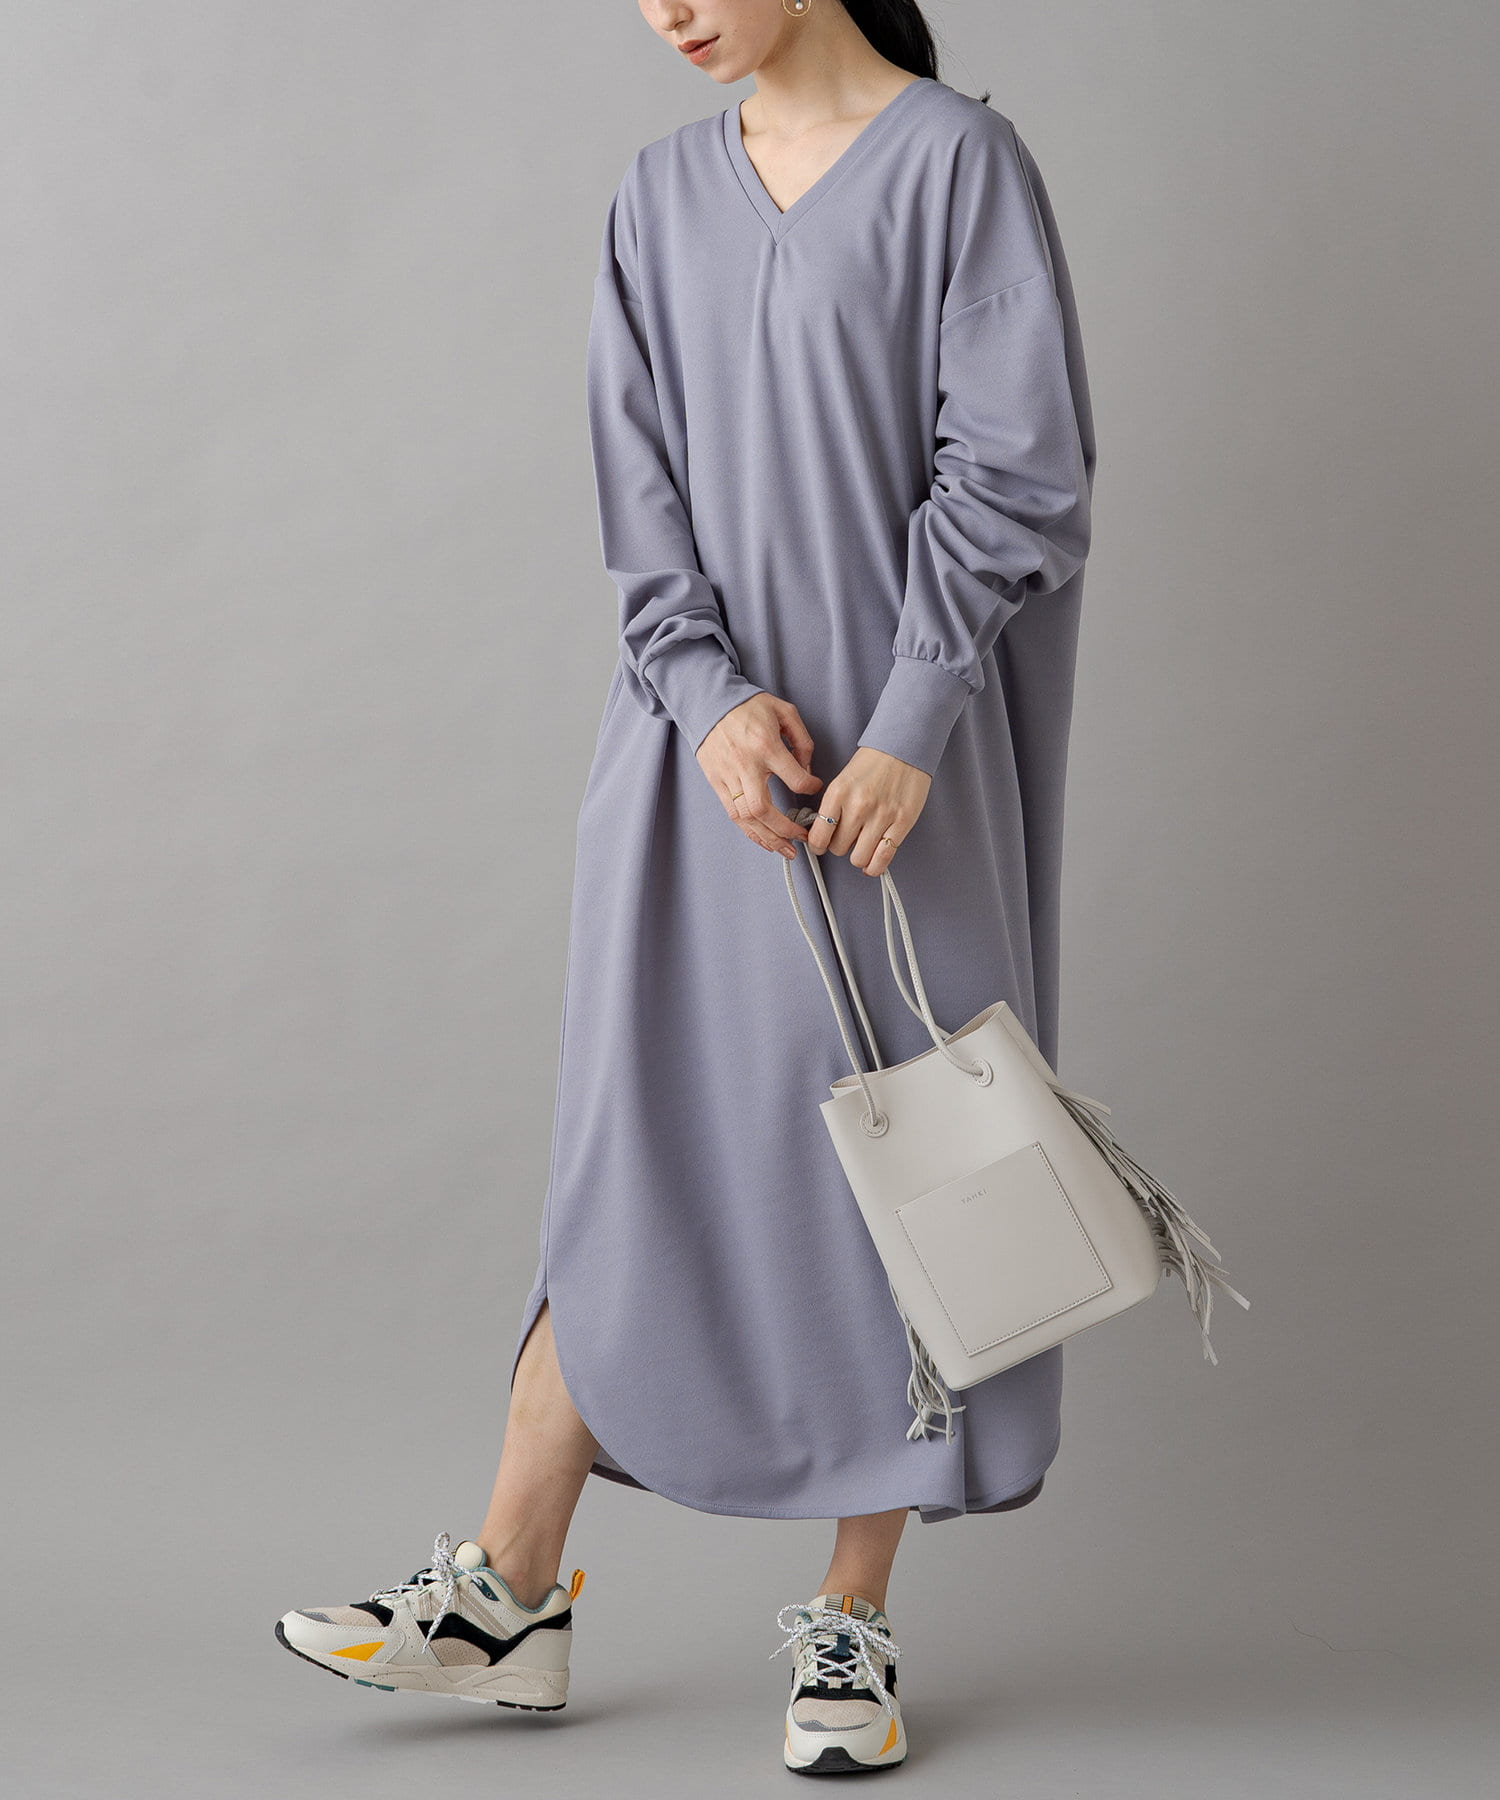 OUTLET(アウトレット) 【Loungedress】ワンマイルワンピース